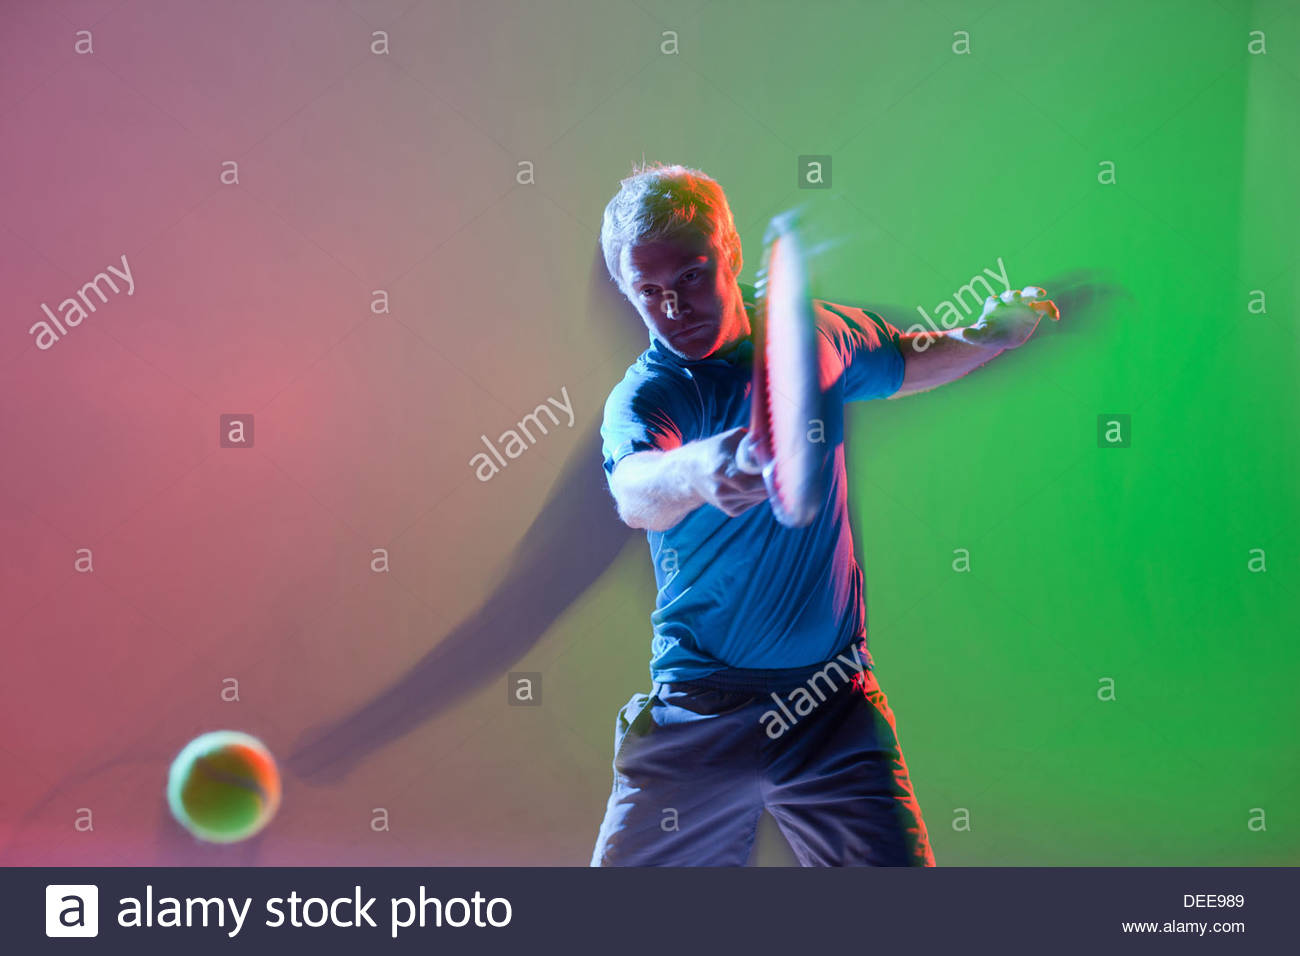 Blurred view of tennis player swinging racket - Stock Image